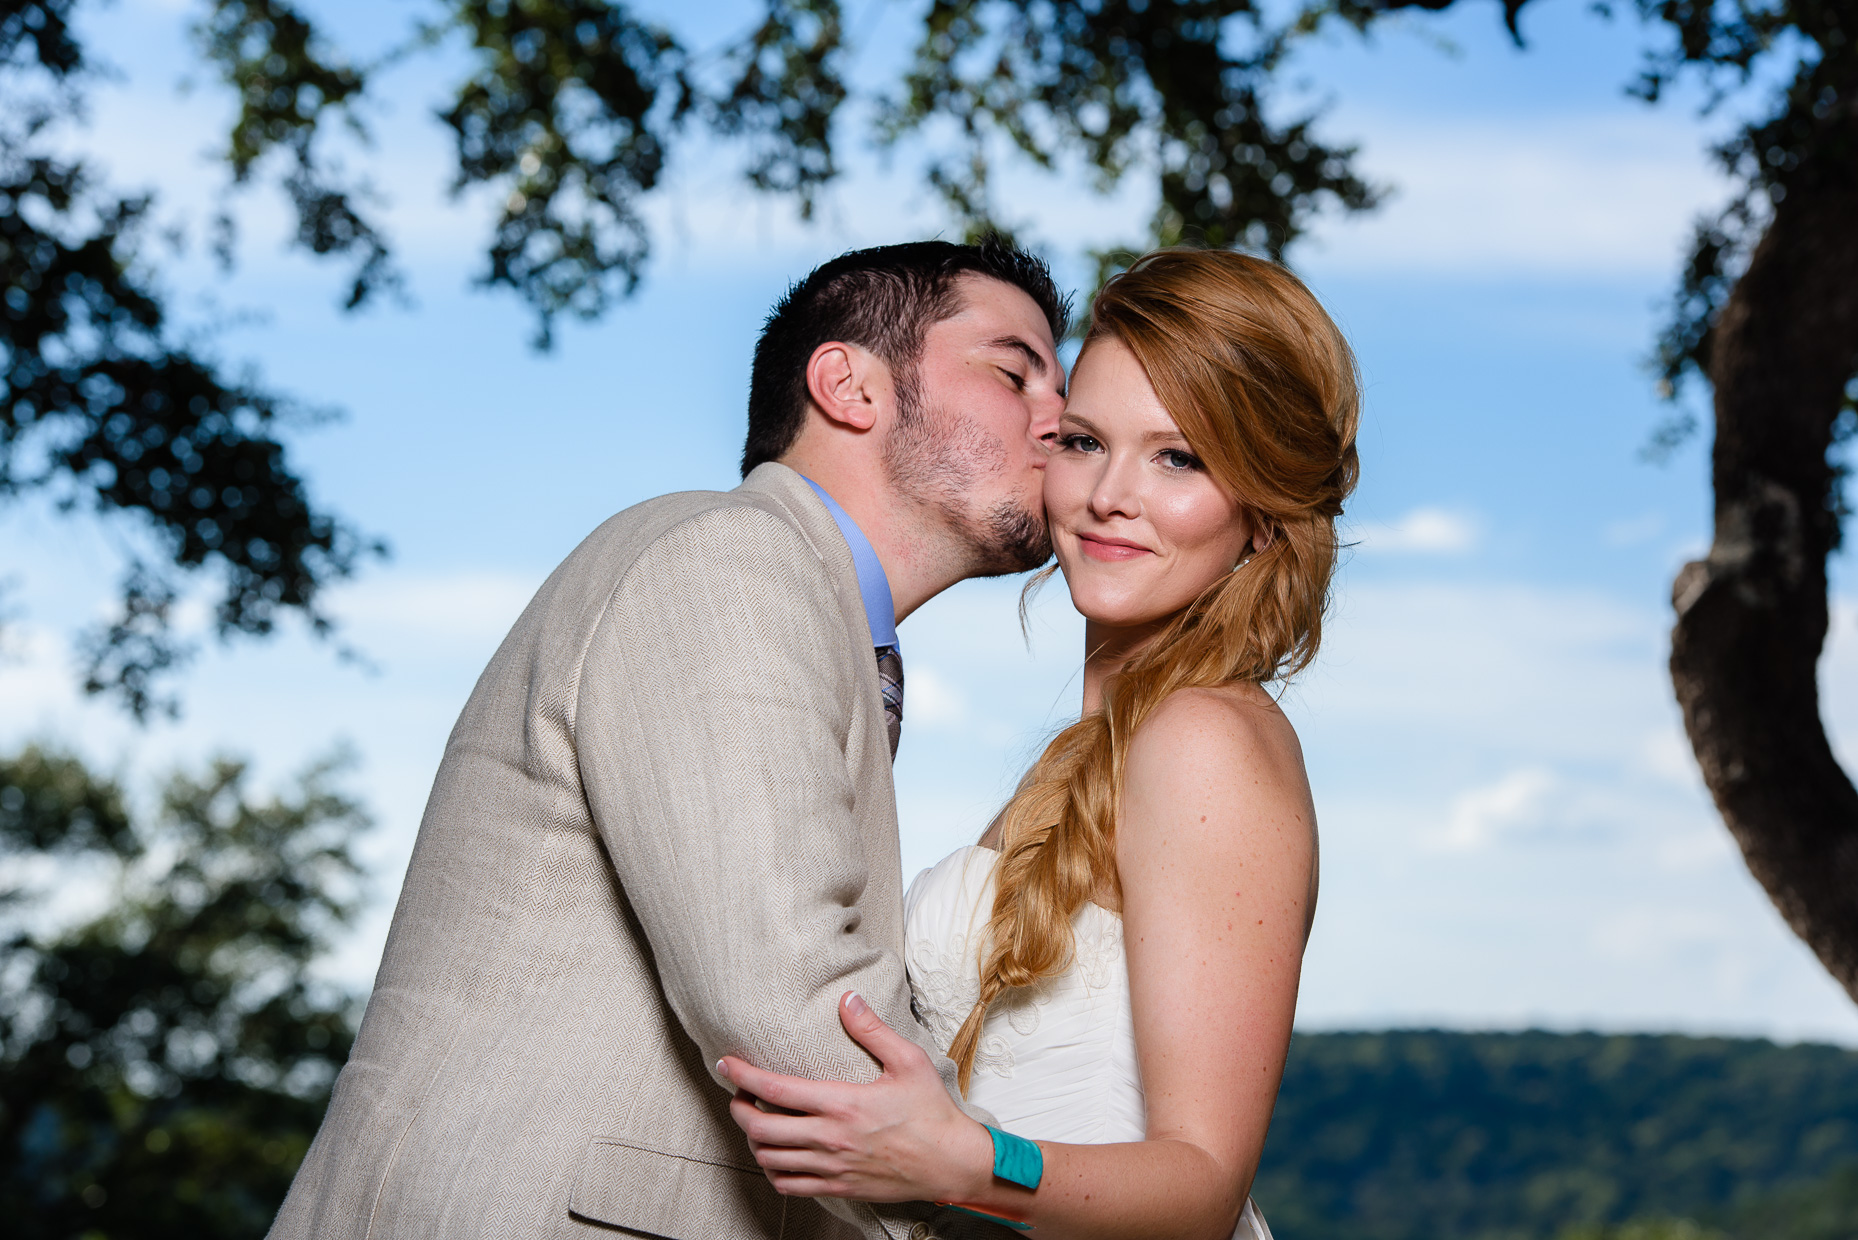 Groom-kisses-bride-austin-wedding-photographer-outdoor-texas